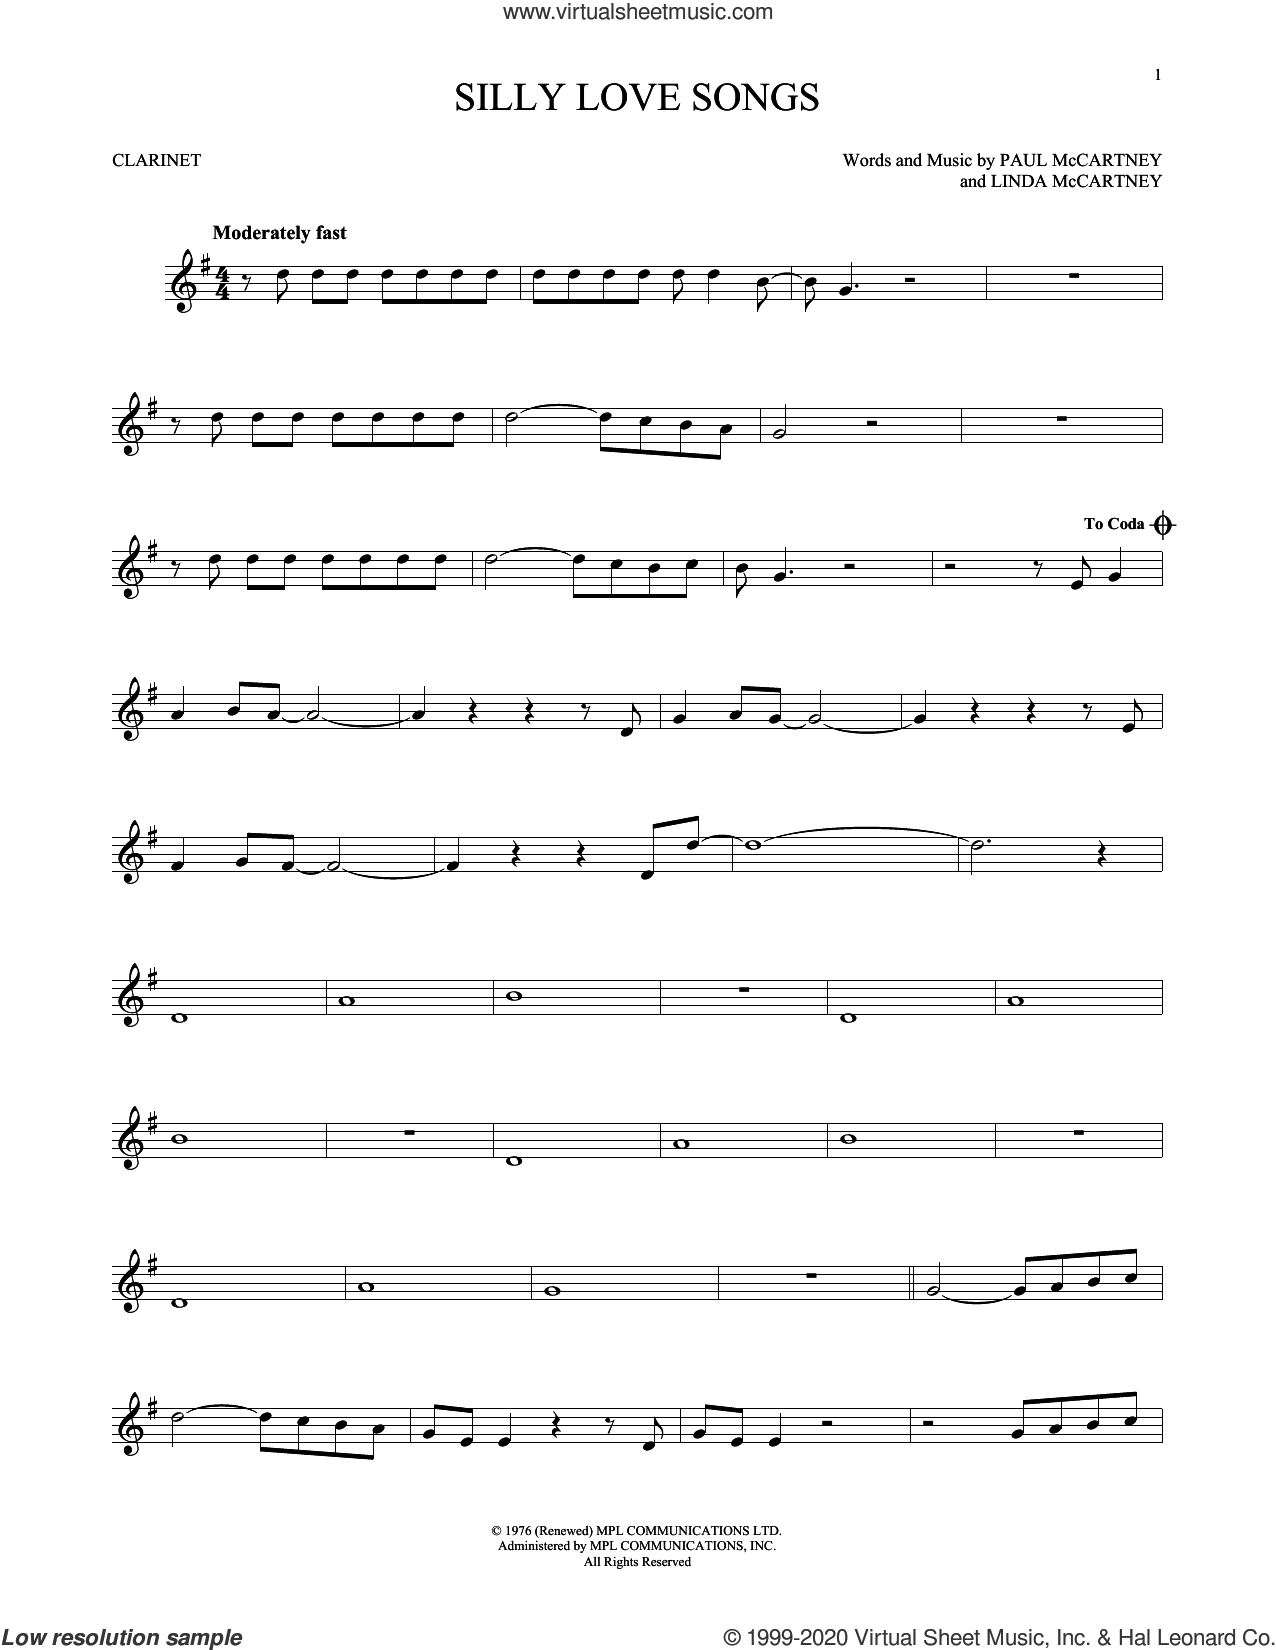 Silly Love Songs sheet music for clarinet solo by Wings, Linda McCartney and Paul McCartney, intermediate skill level